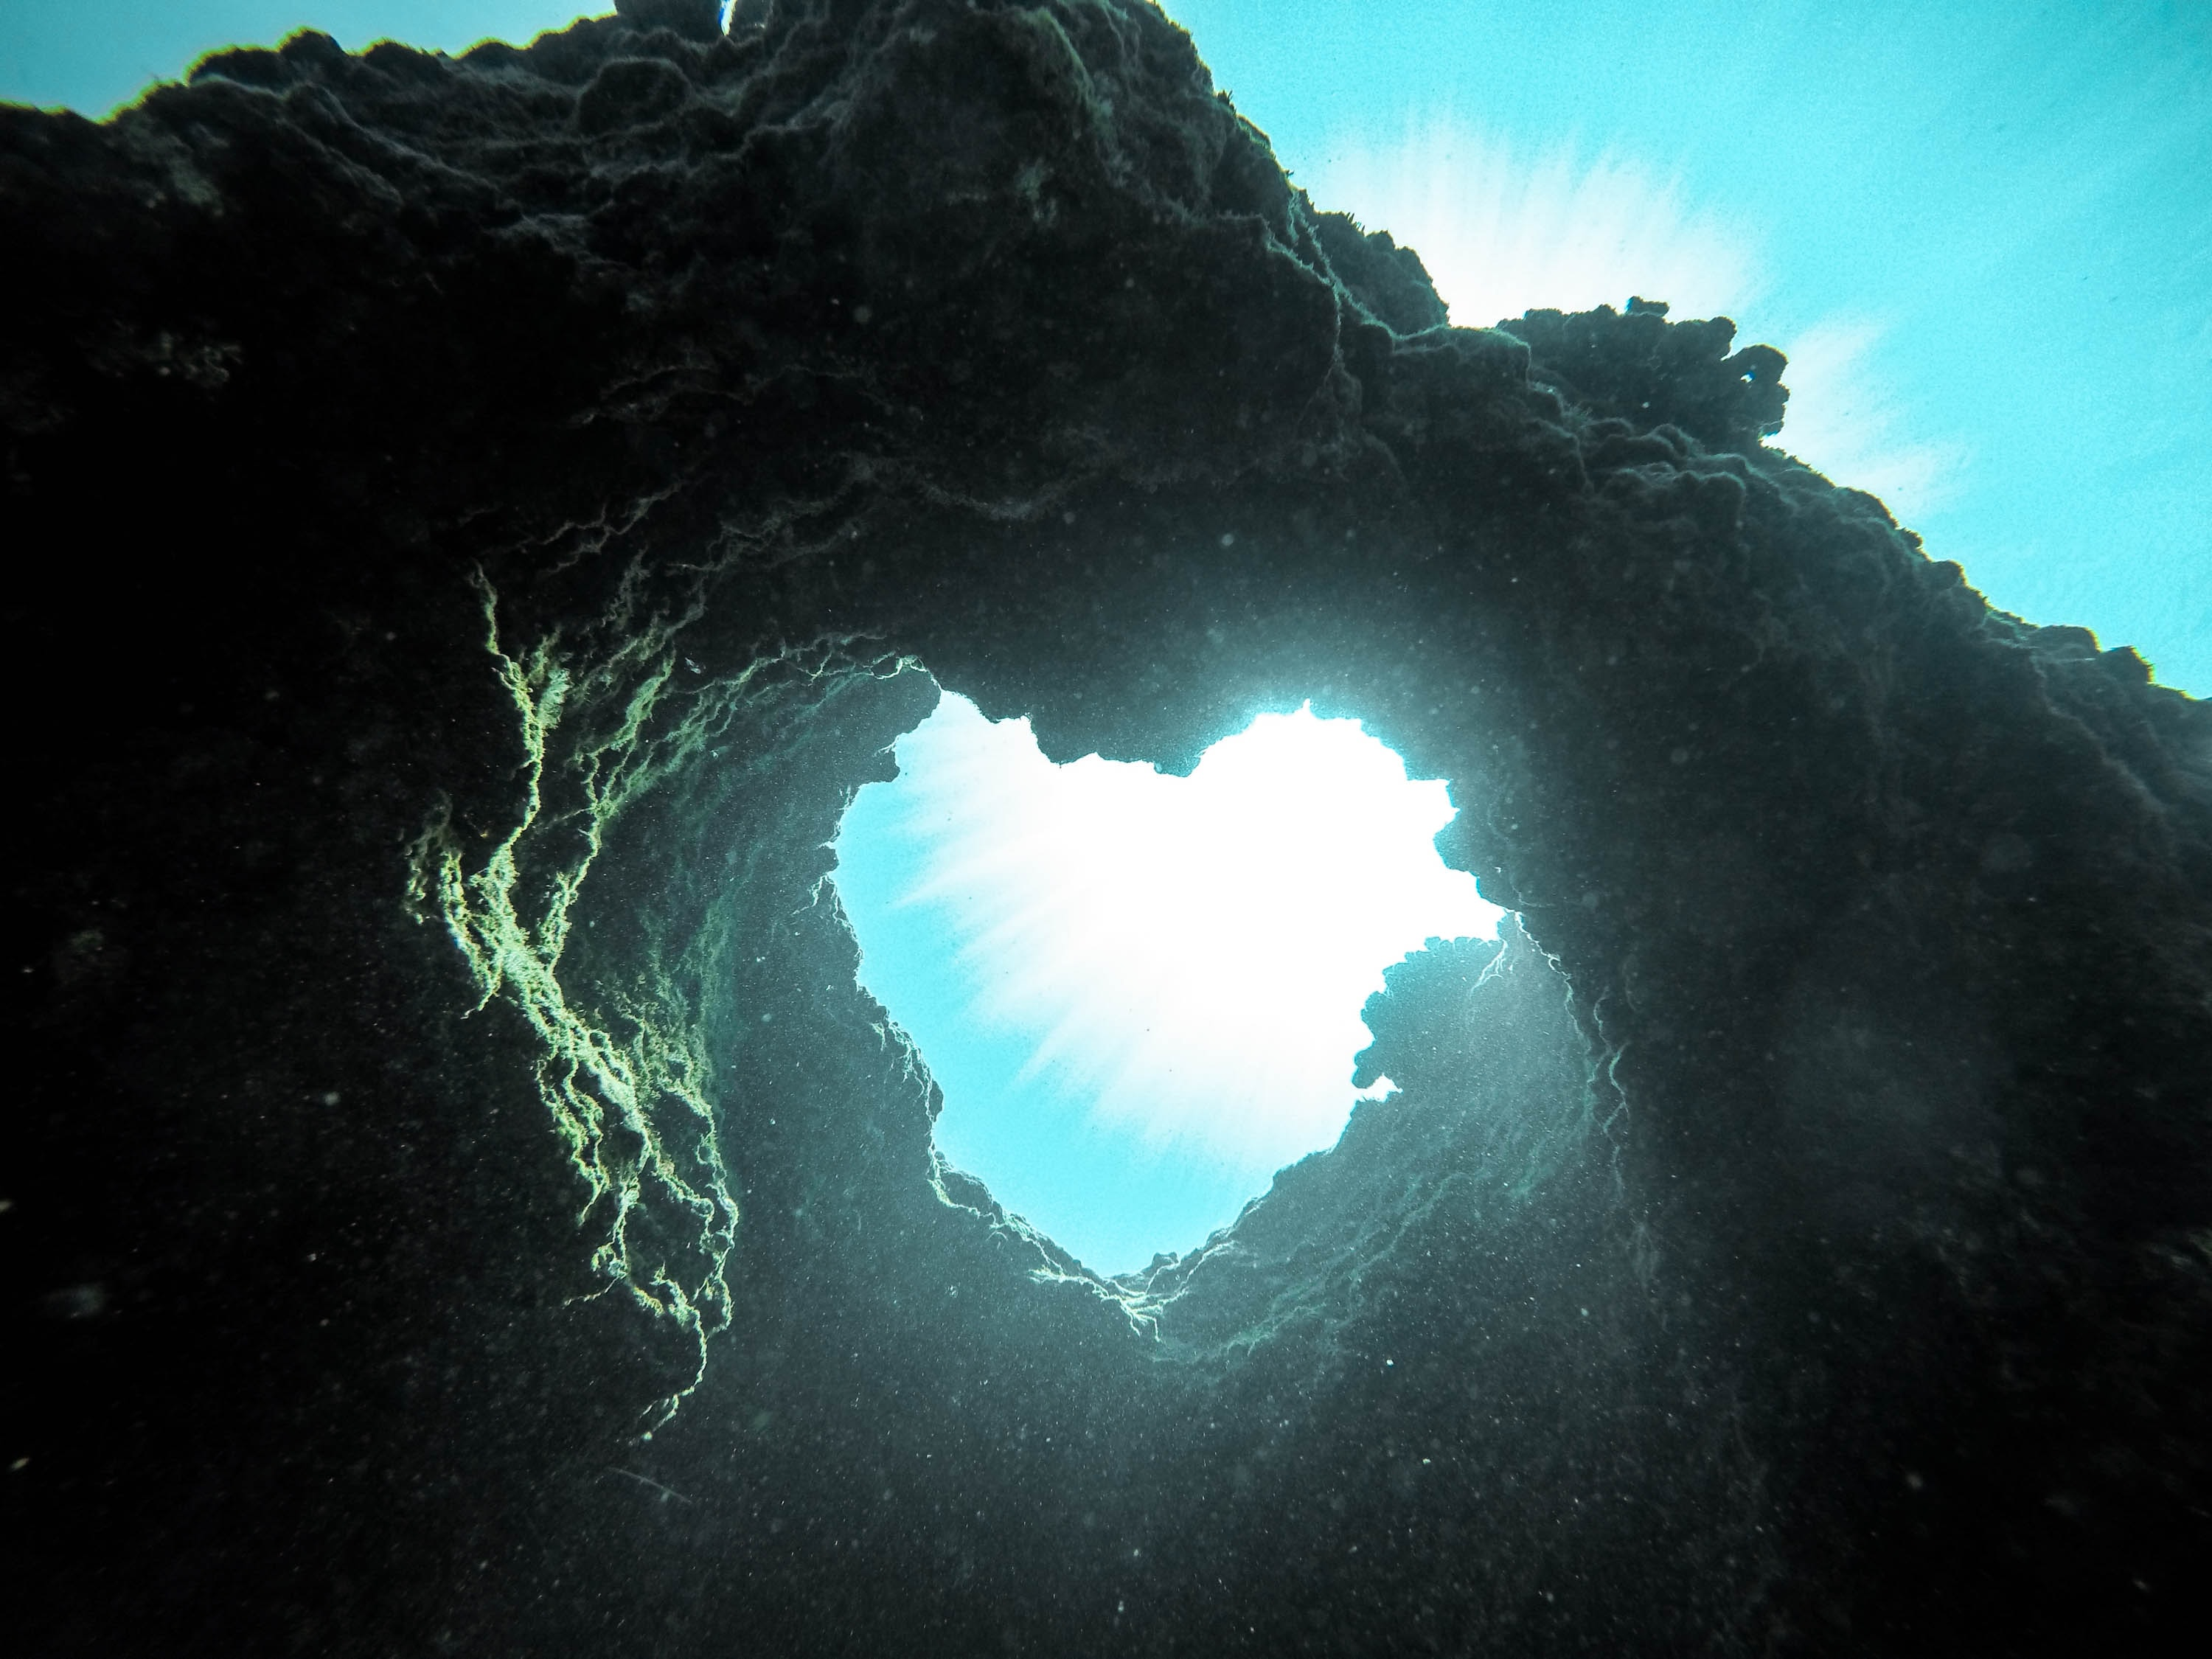 A heart shaped underwater rock formation.